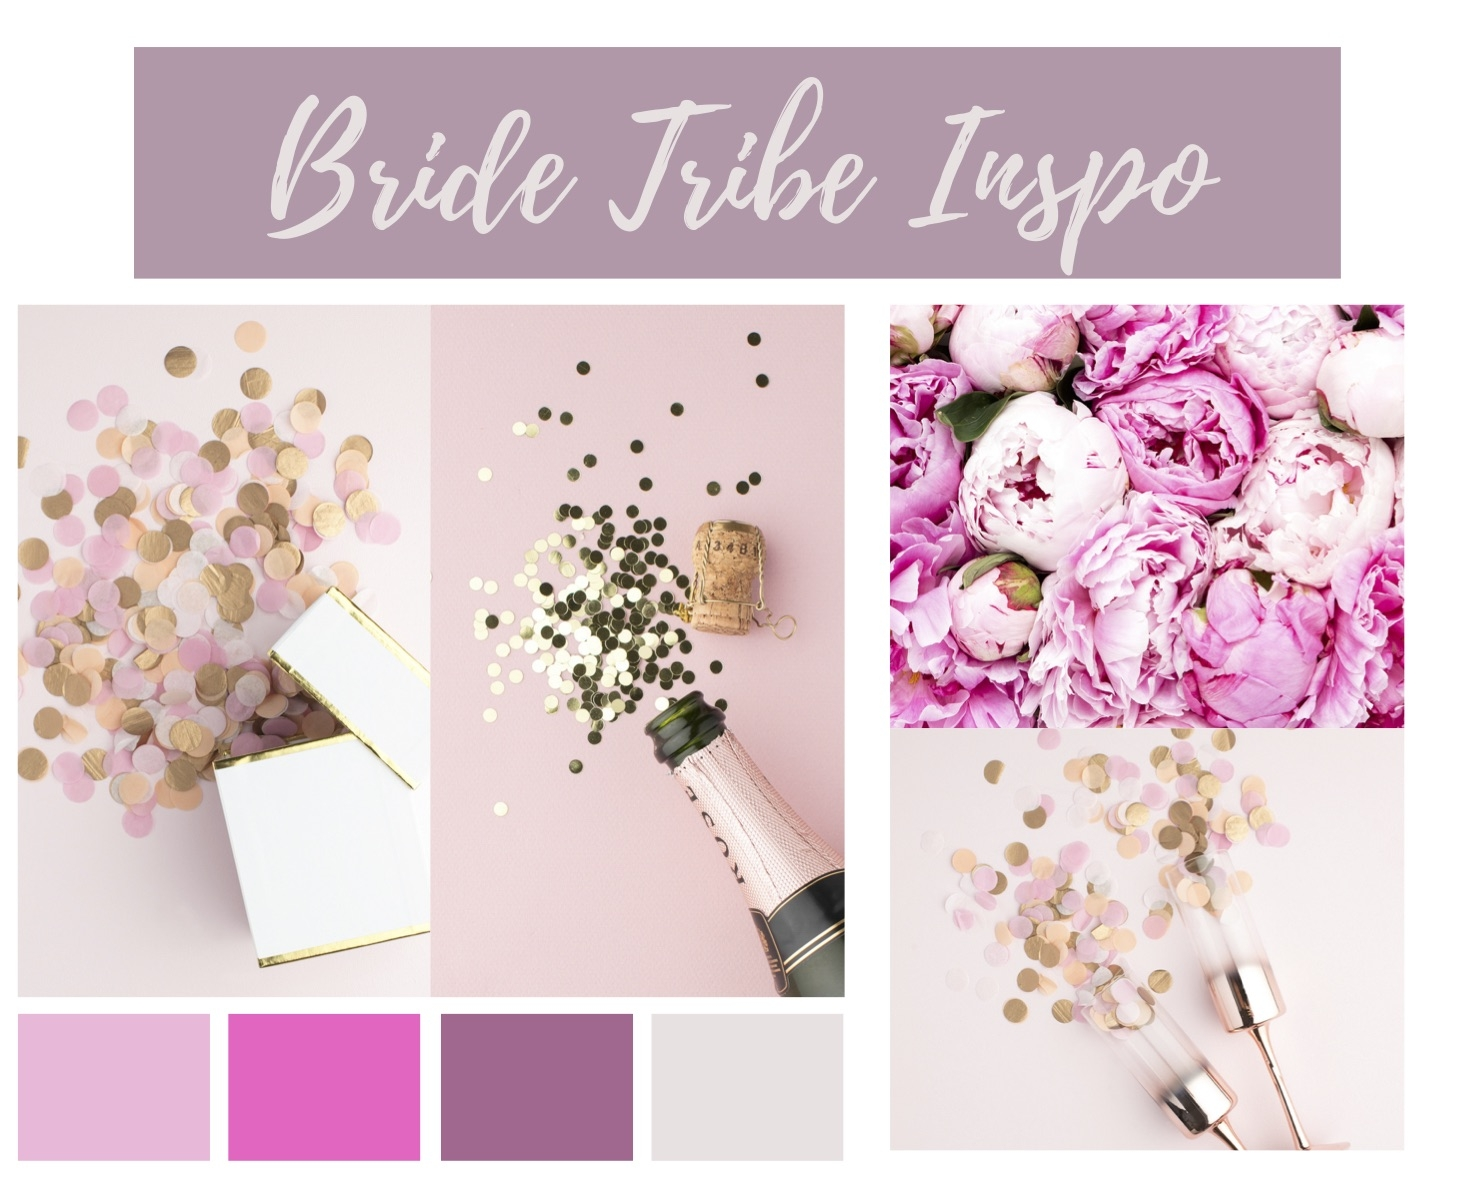 bridetribeinspo.jpg